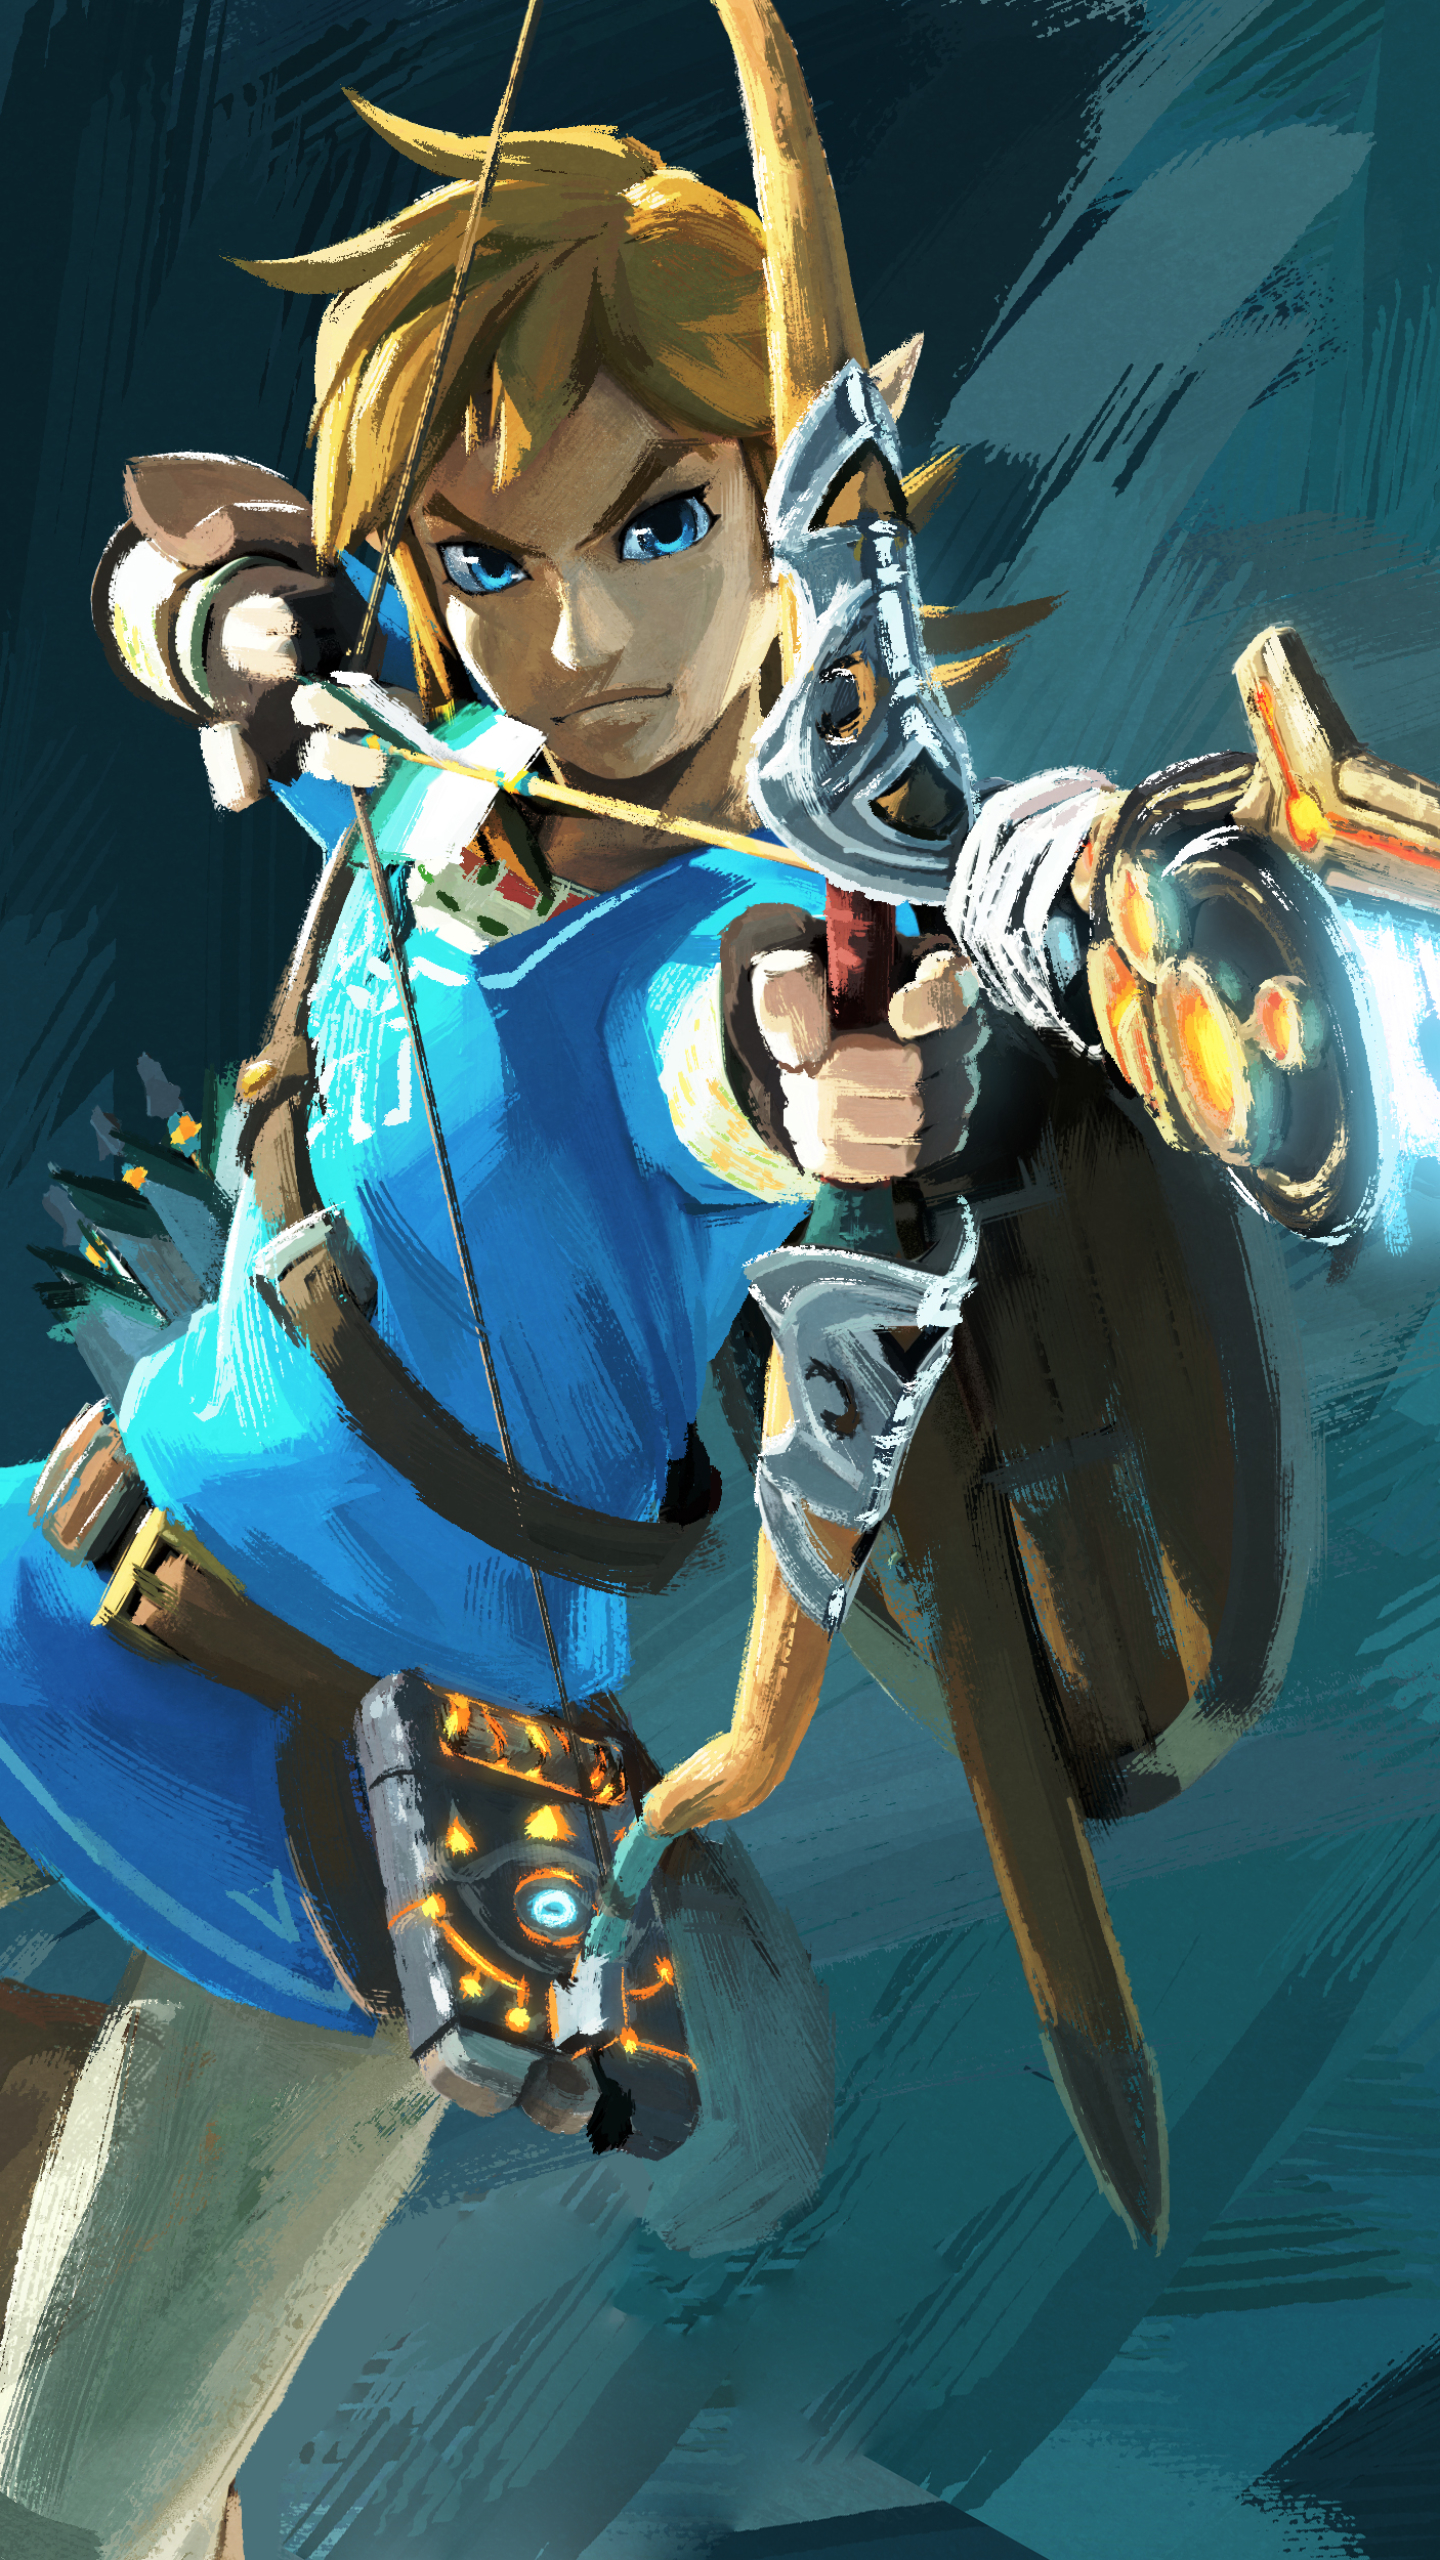 24 The Legend Of Zelda Breath Wild Apple Iphone 7 Plus Botw Phone Wallpapers